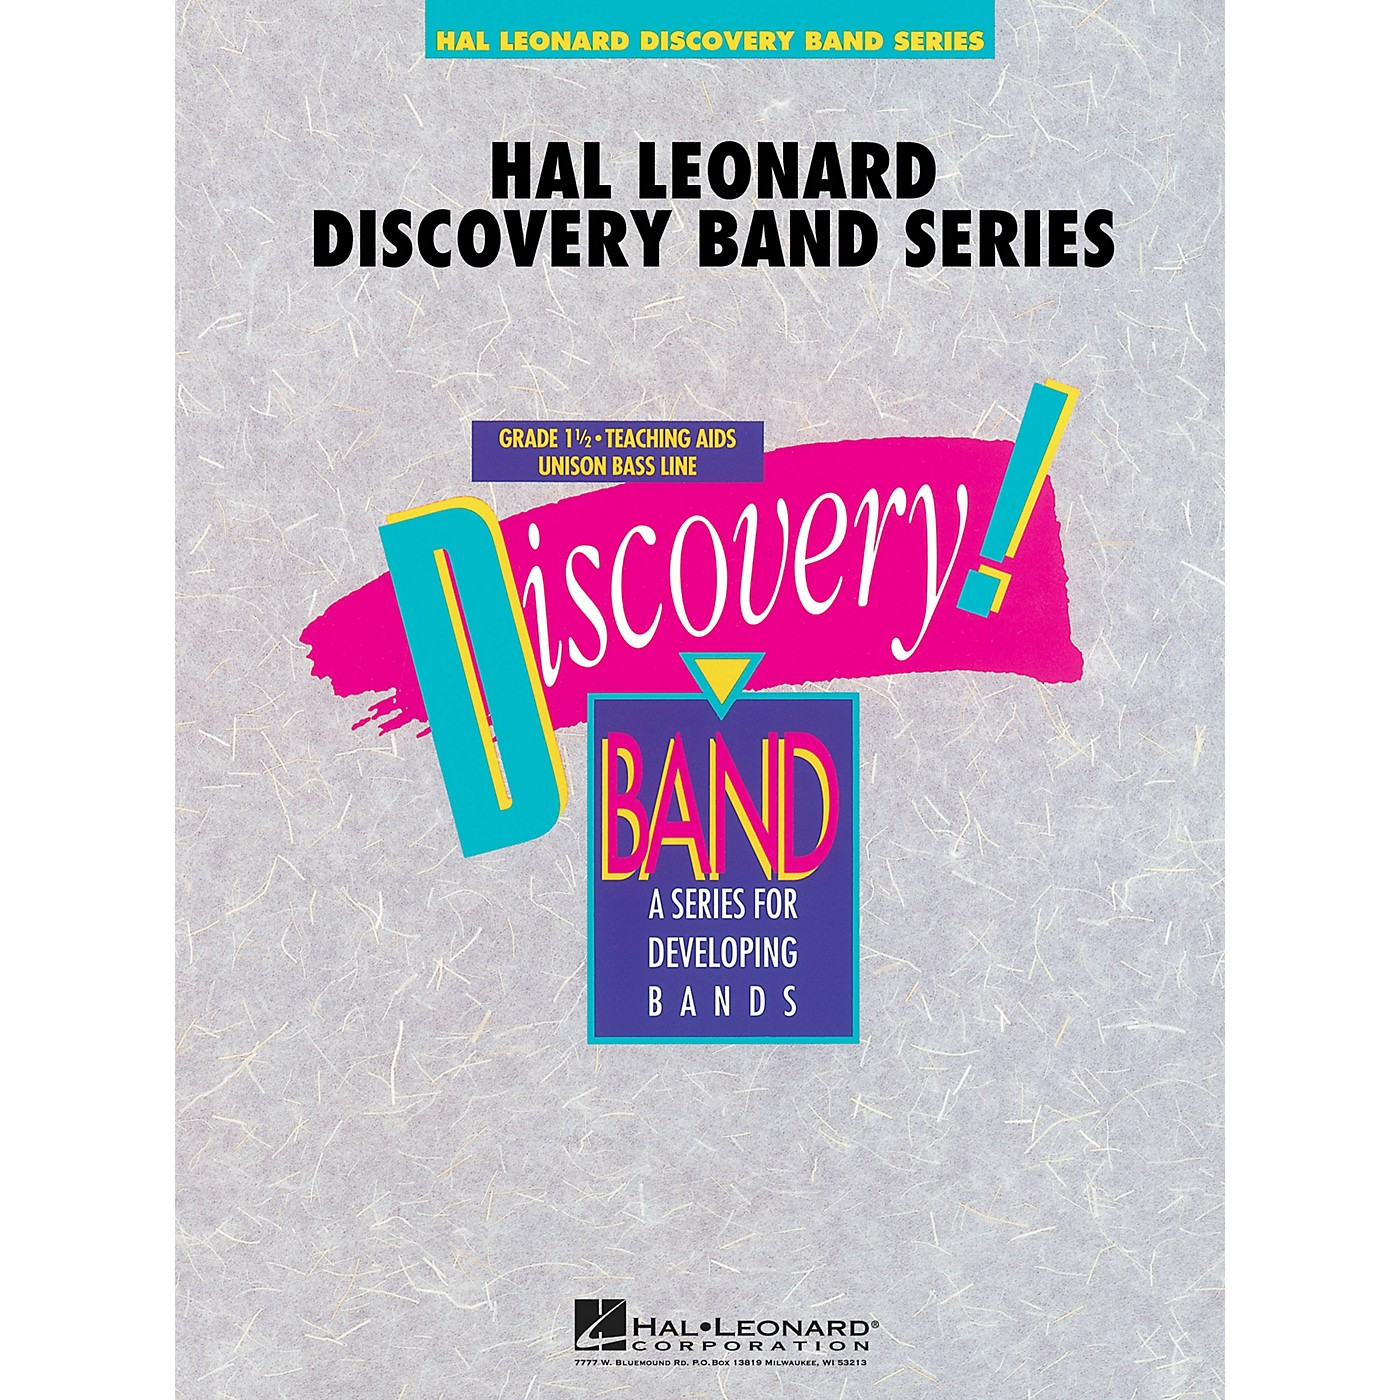 Hal Leonard Mission: Impossible Theme Concert Band Level 1 1/2 Arranged by Paul Lavender thumbnail